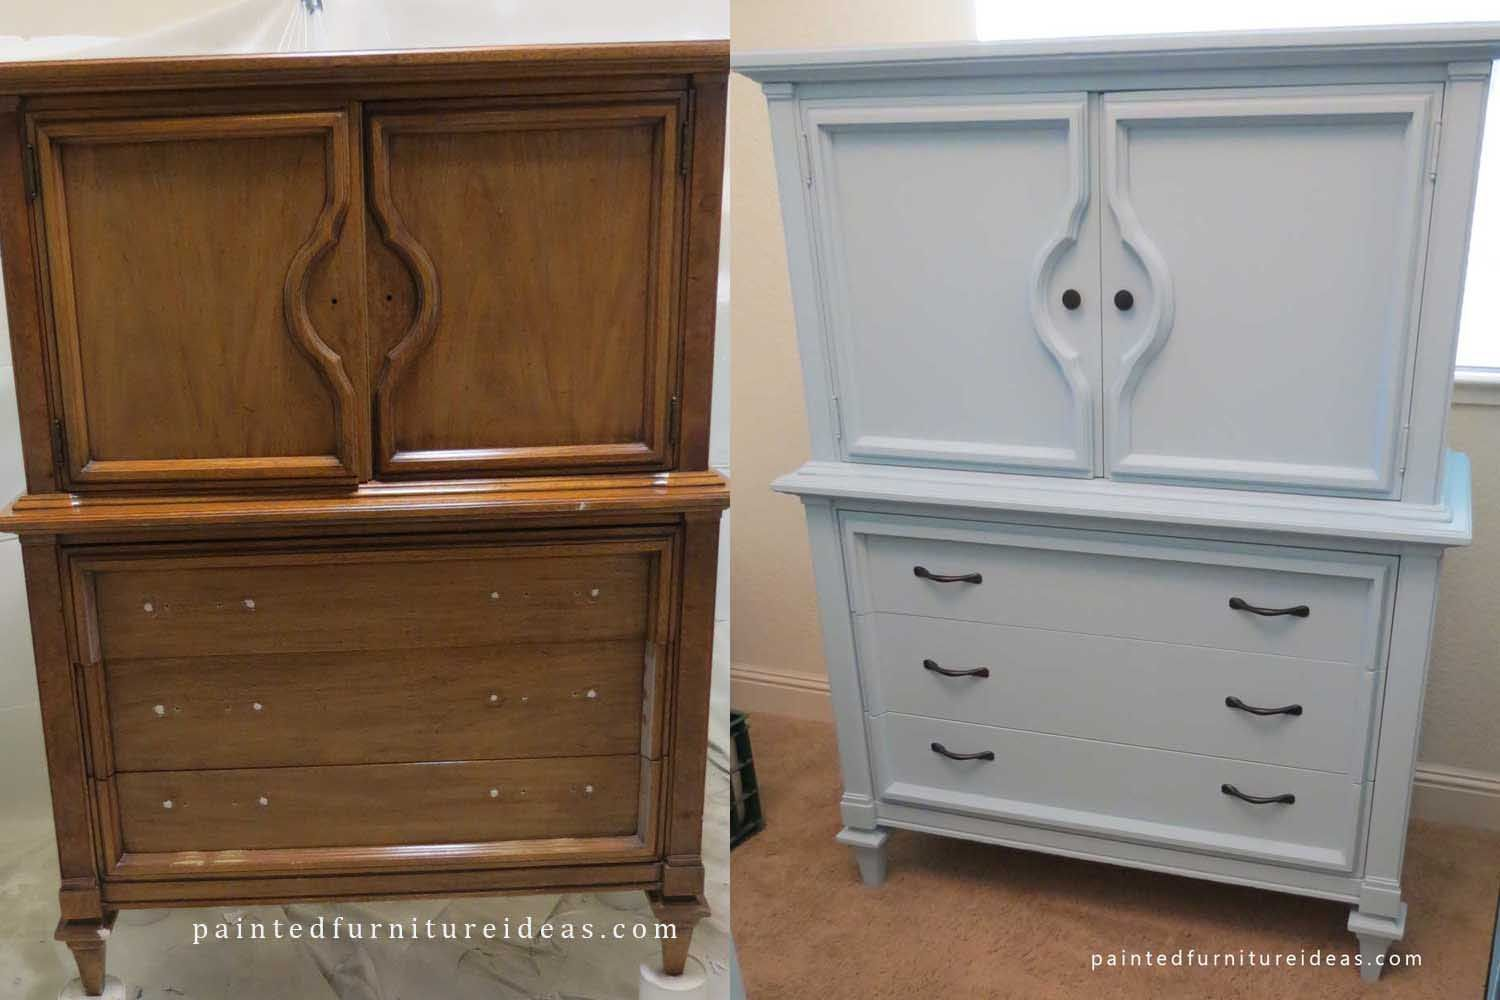 60 S Armoire Before And After Painted Furniture Ideas